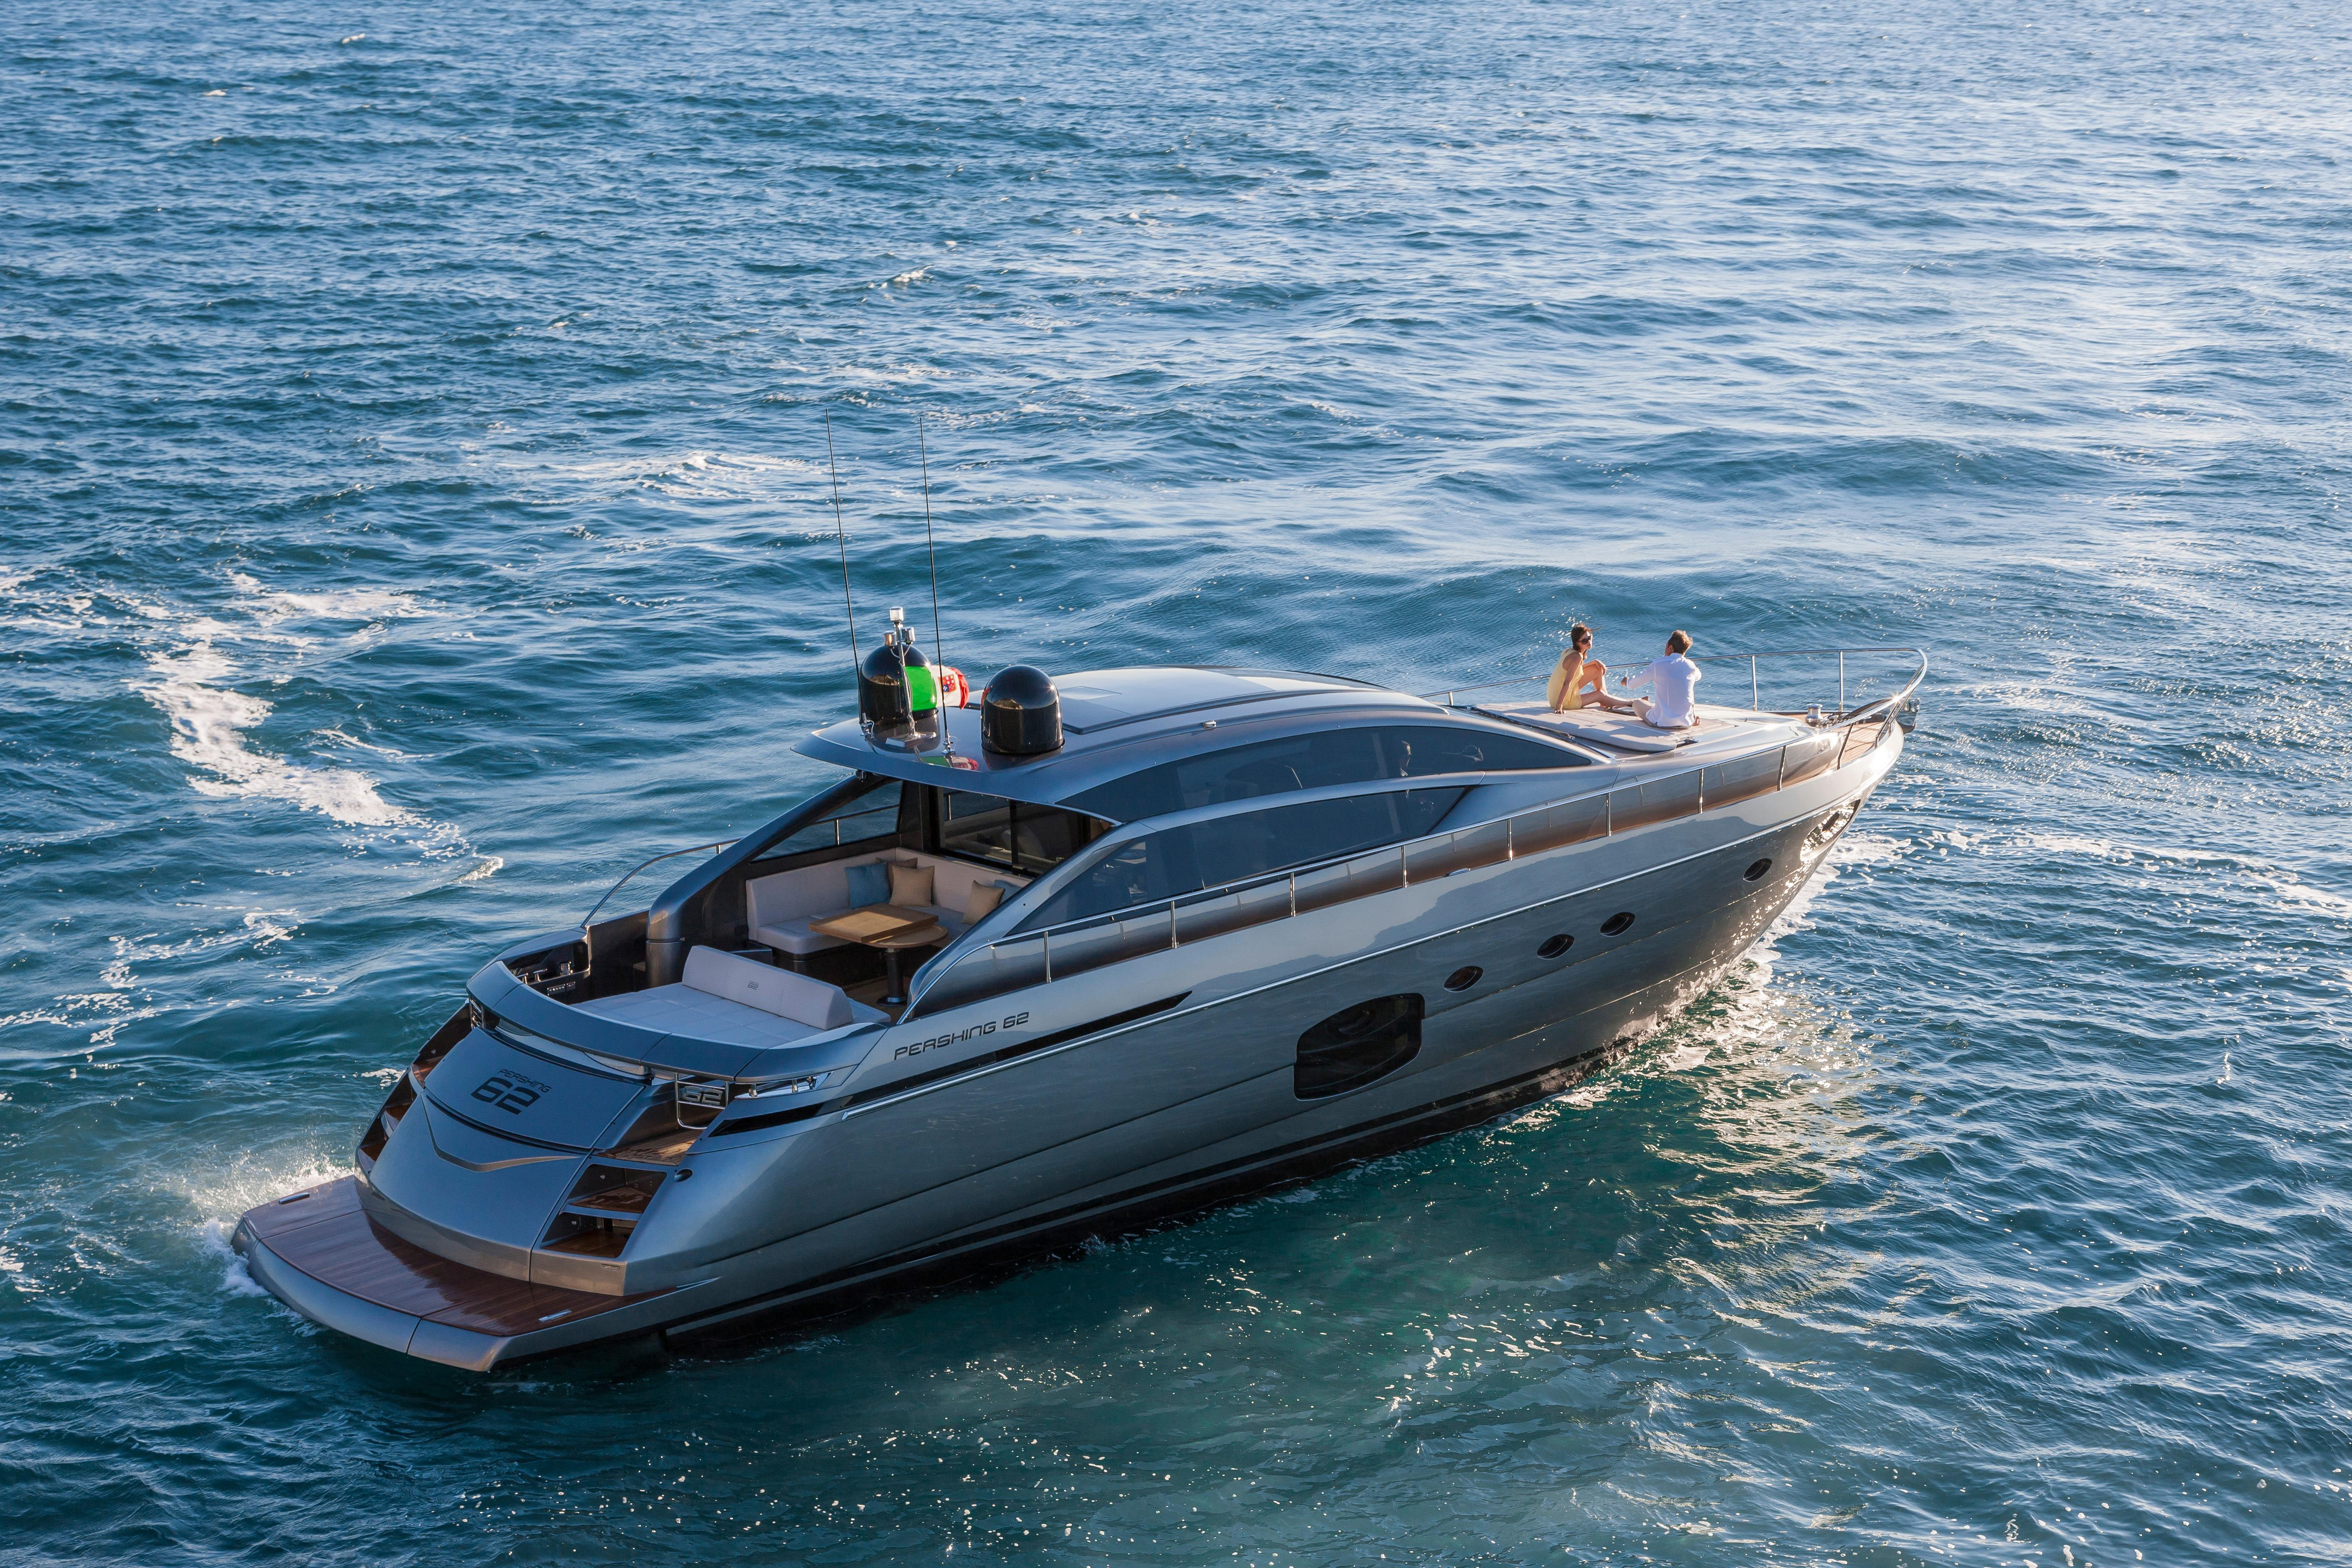 Manufacturer Provided Image: Pershing 62 Stern